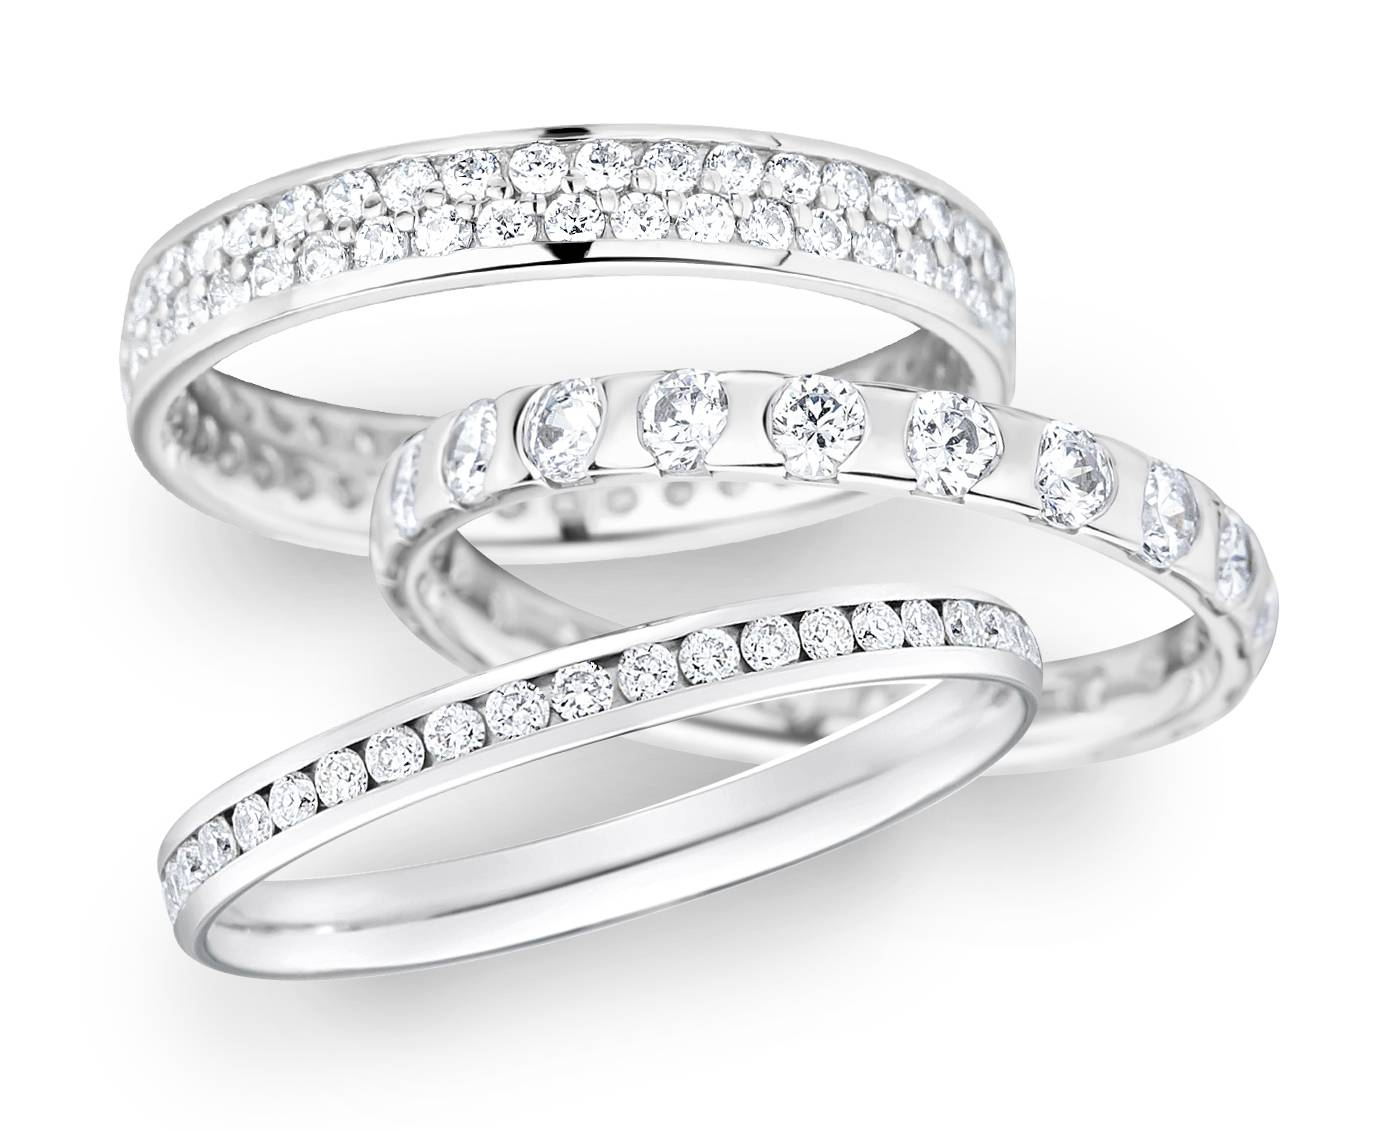 Wedding Rings : Diamond Wedding Rings For Him And Her Diamond Inside Diamonds Wedding Rings (View 11 of 15)